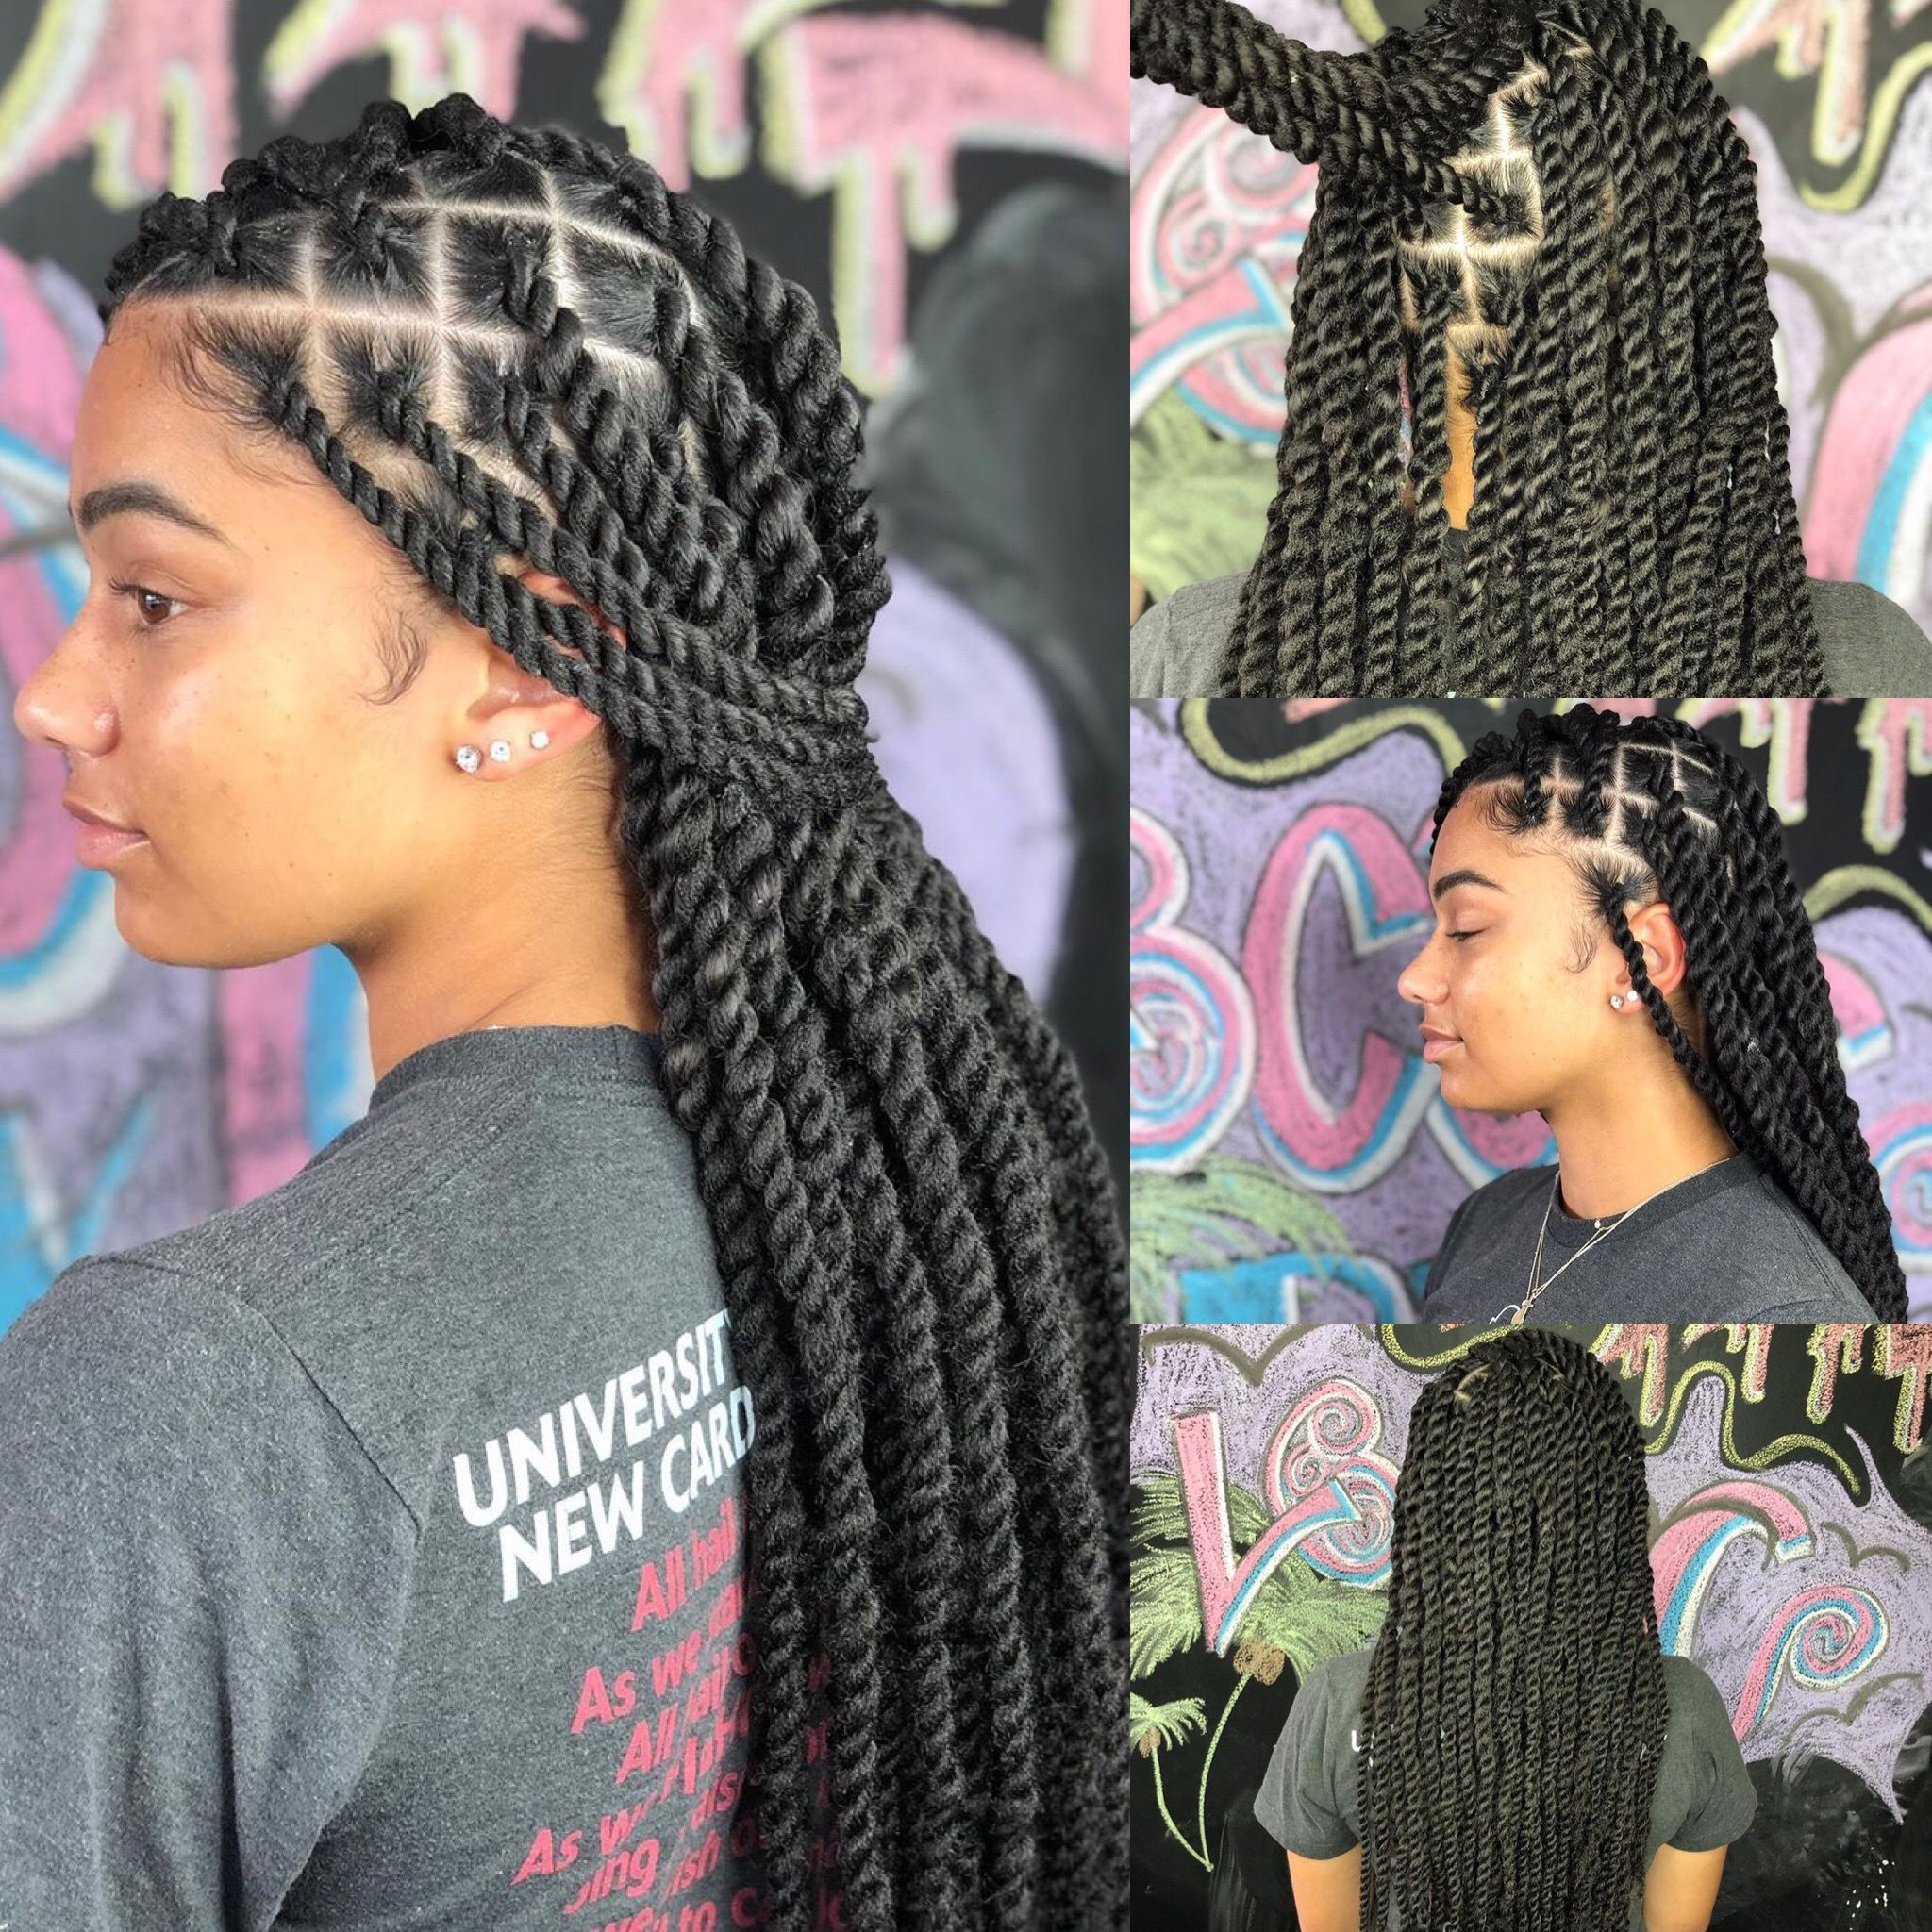 Best Braiding Hairstyles African American Hair 715 Store Wig Care Straight Back Braids 2018 Pre Plucked Wigs